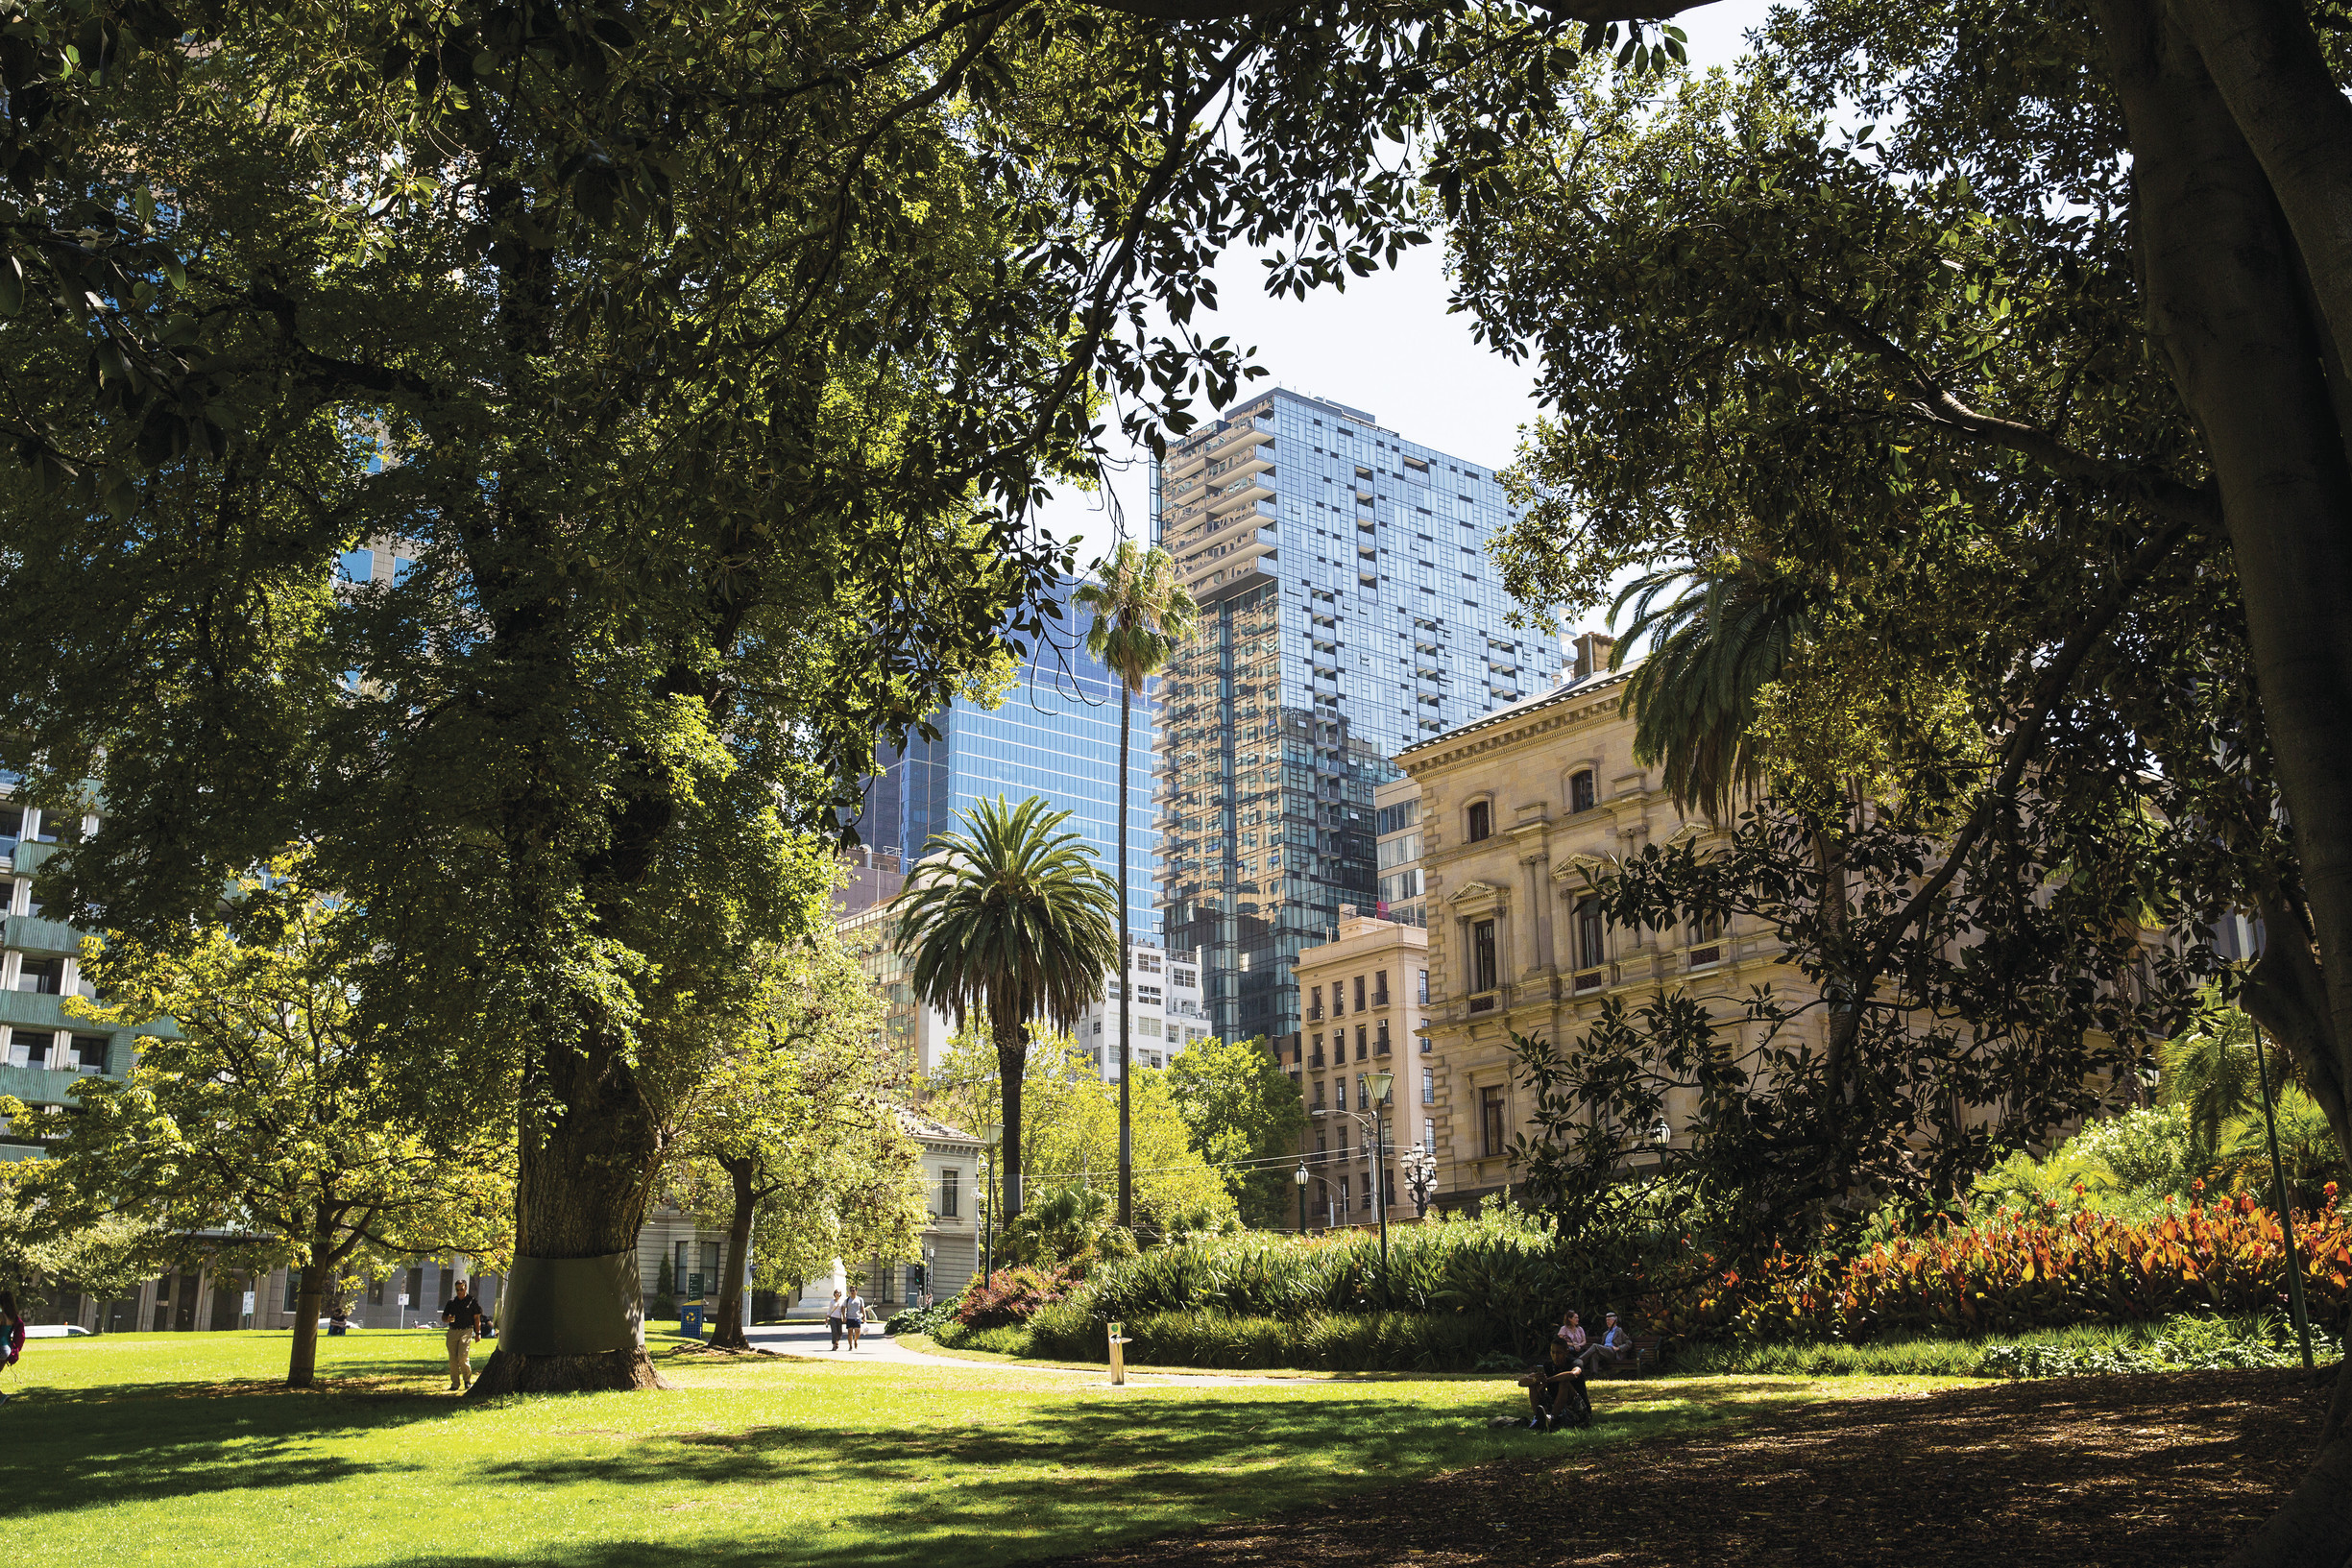 The best picnic spots in Melbourne